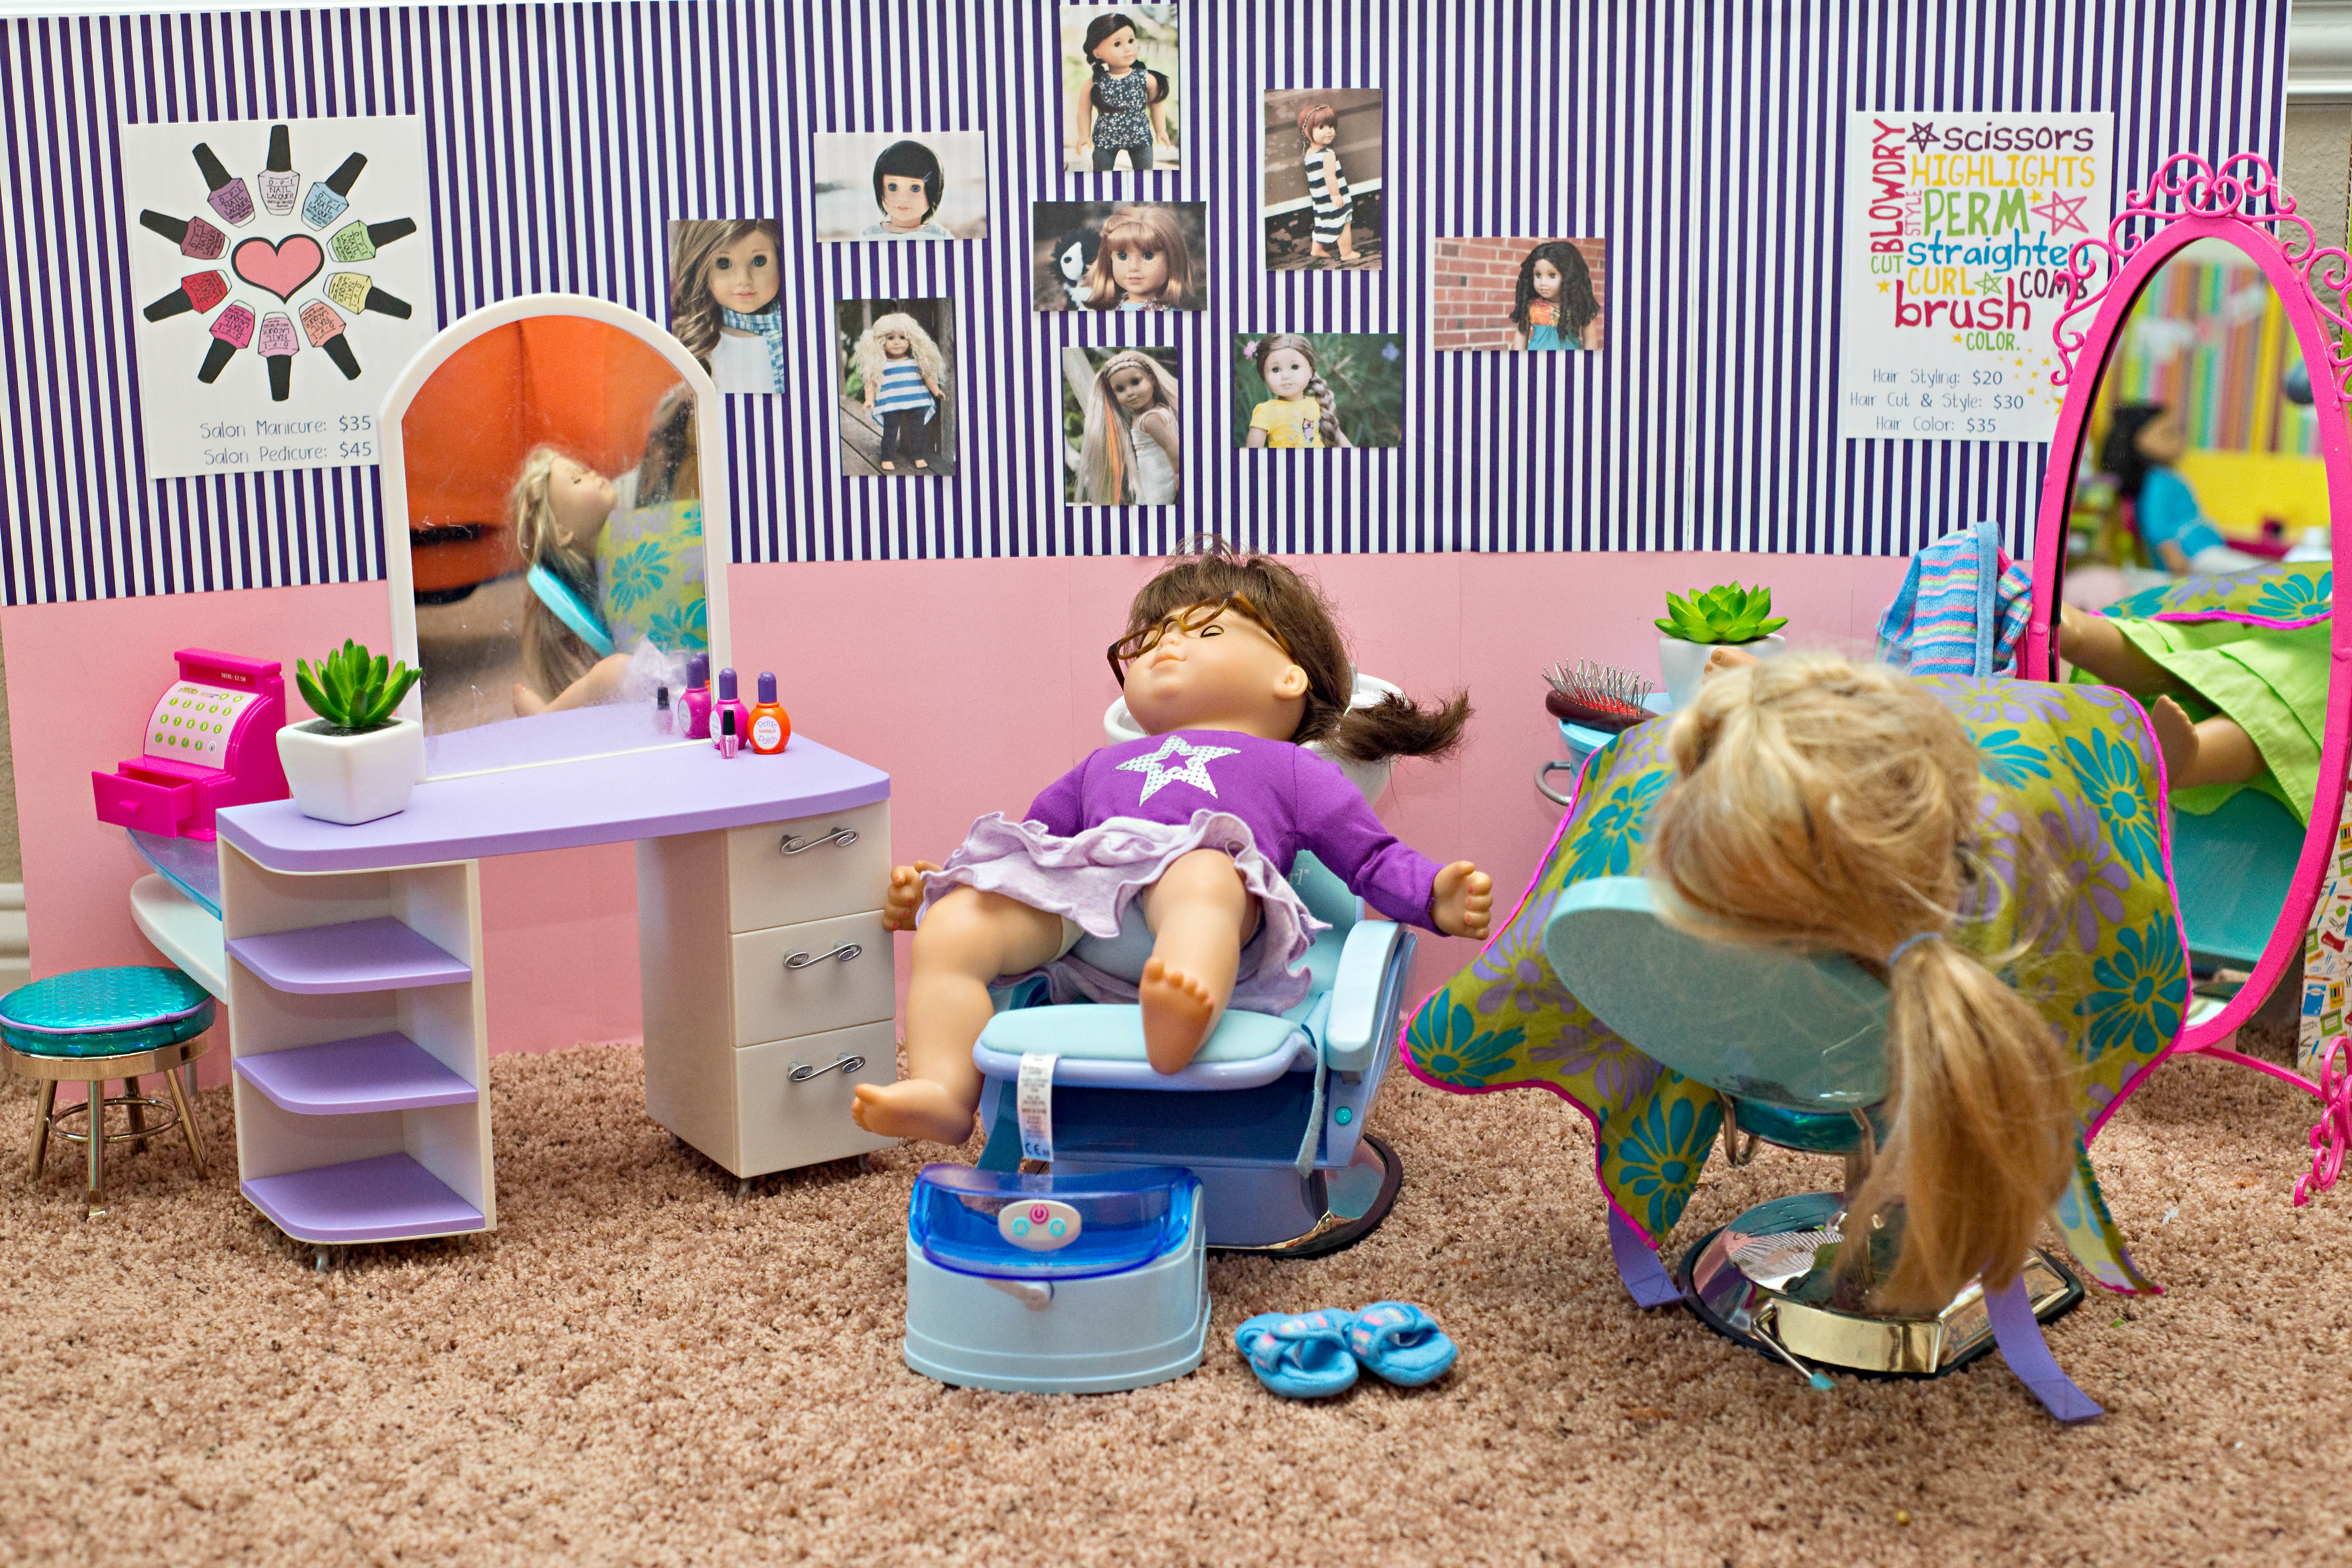 Doll Spa Diary Of A Dysfunctional Domestic Diva